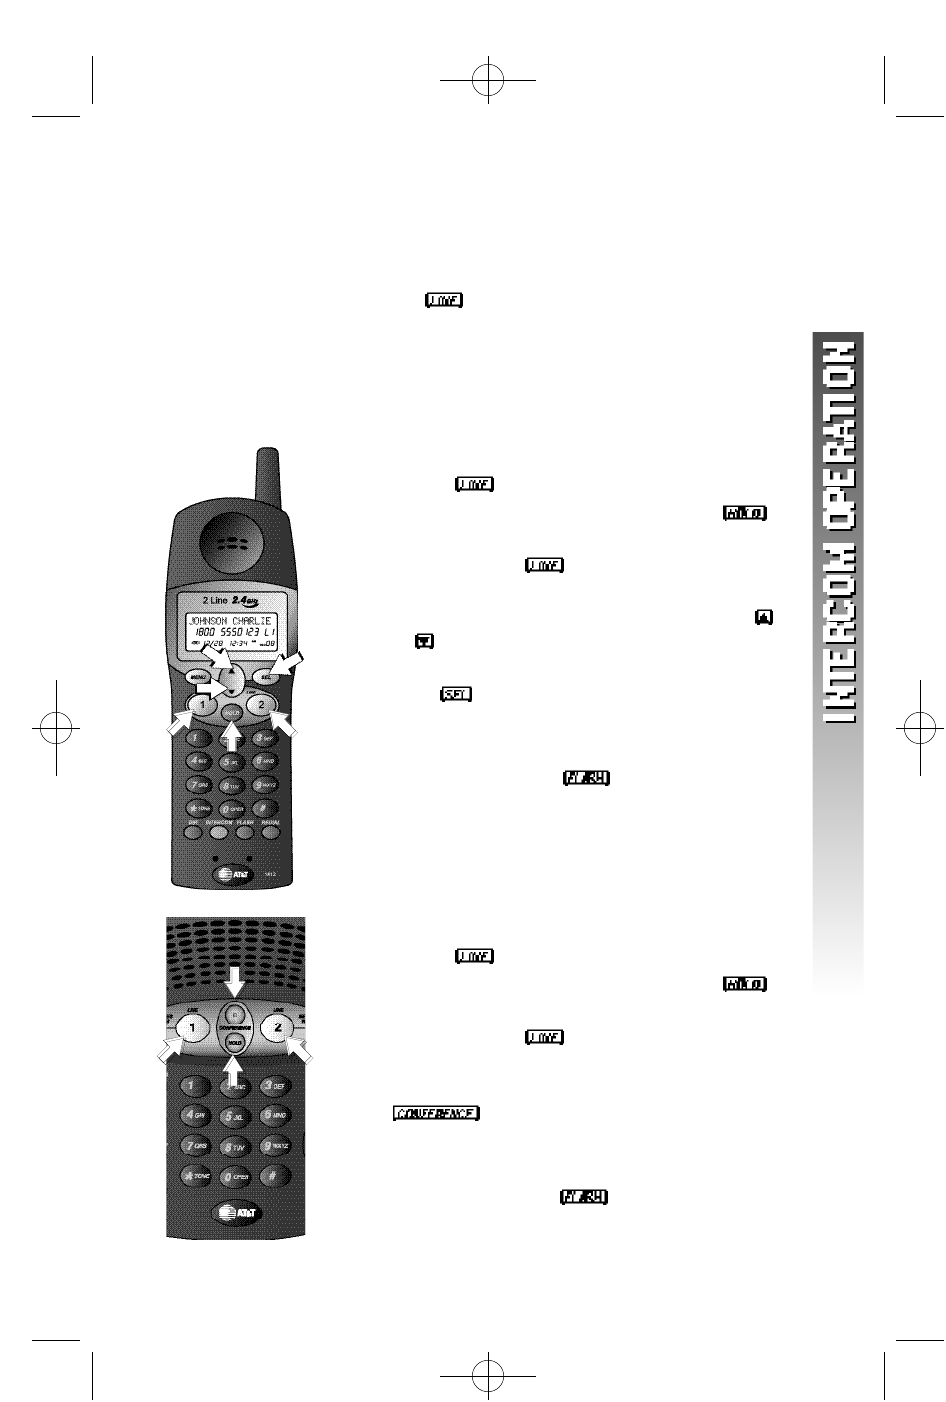 Page 32 of AT&T Cordless Telephone 1412 User Guide